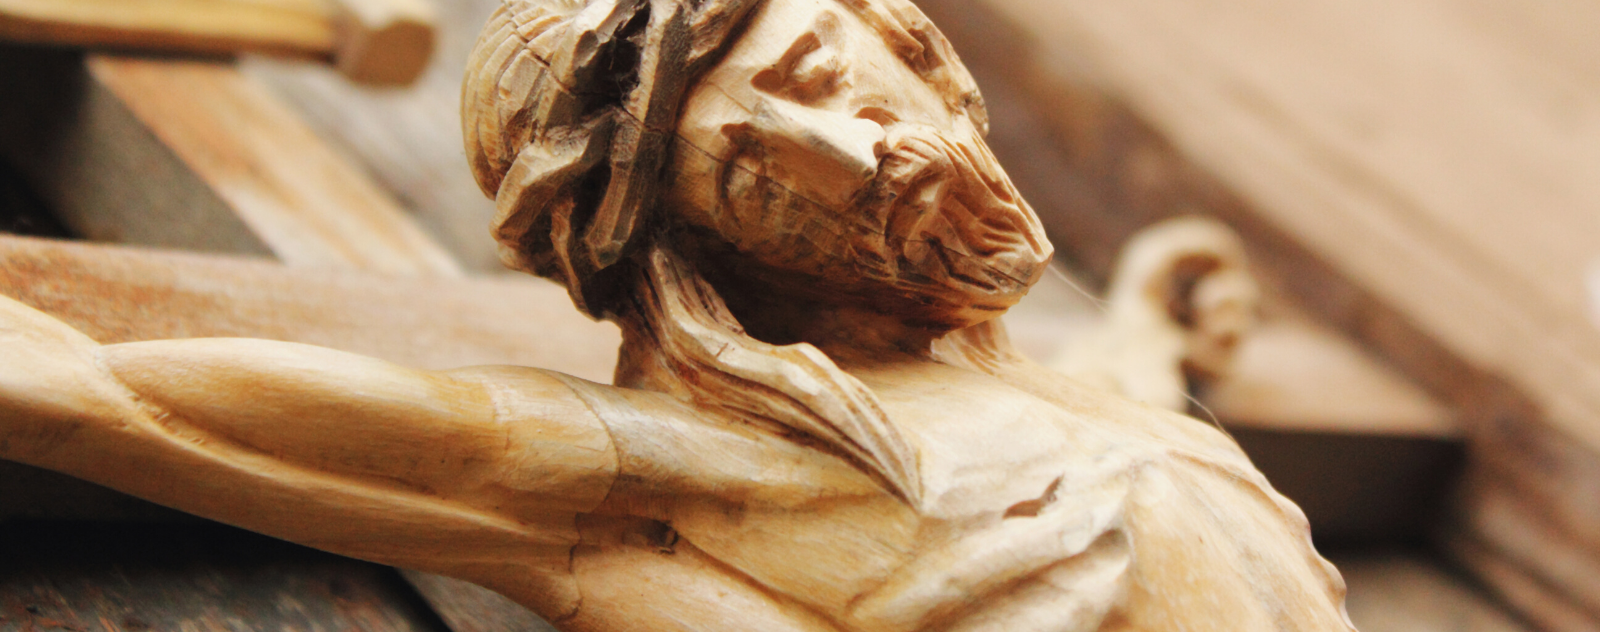 Why Jesus was crucified